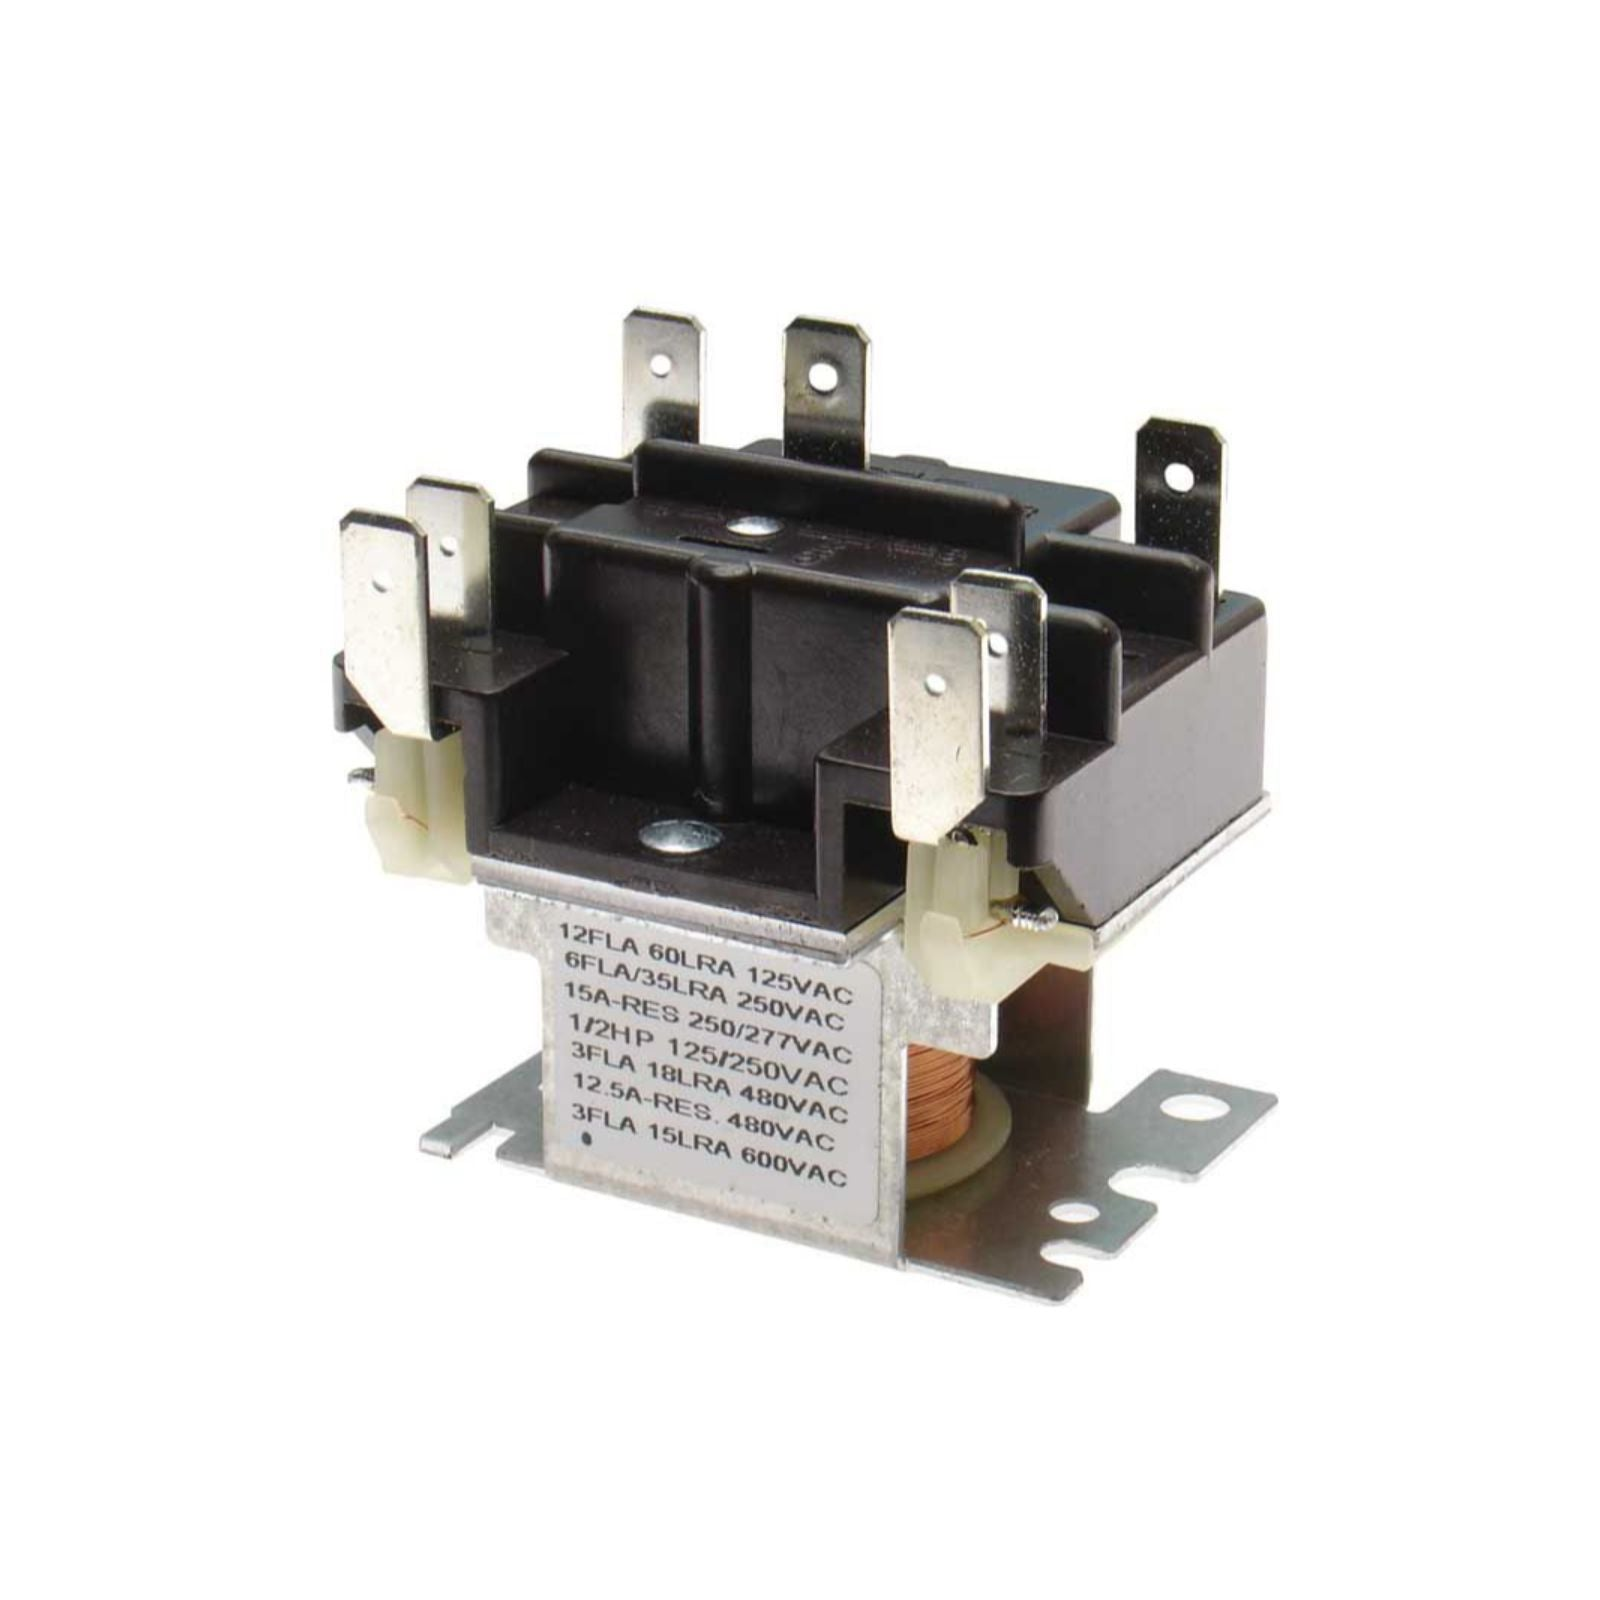 PROTECH 42-23114-02 - Relay - SPDT (24VAC coil) on